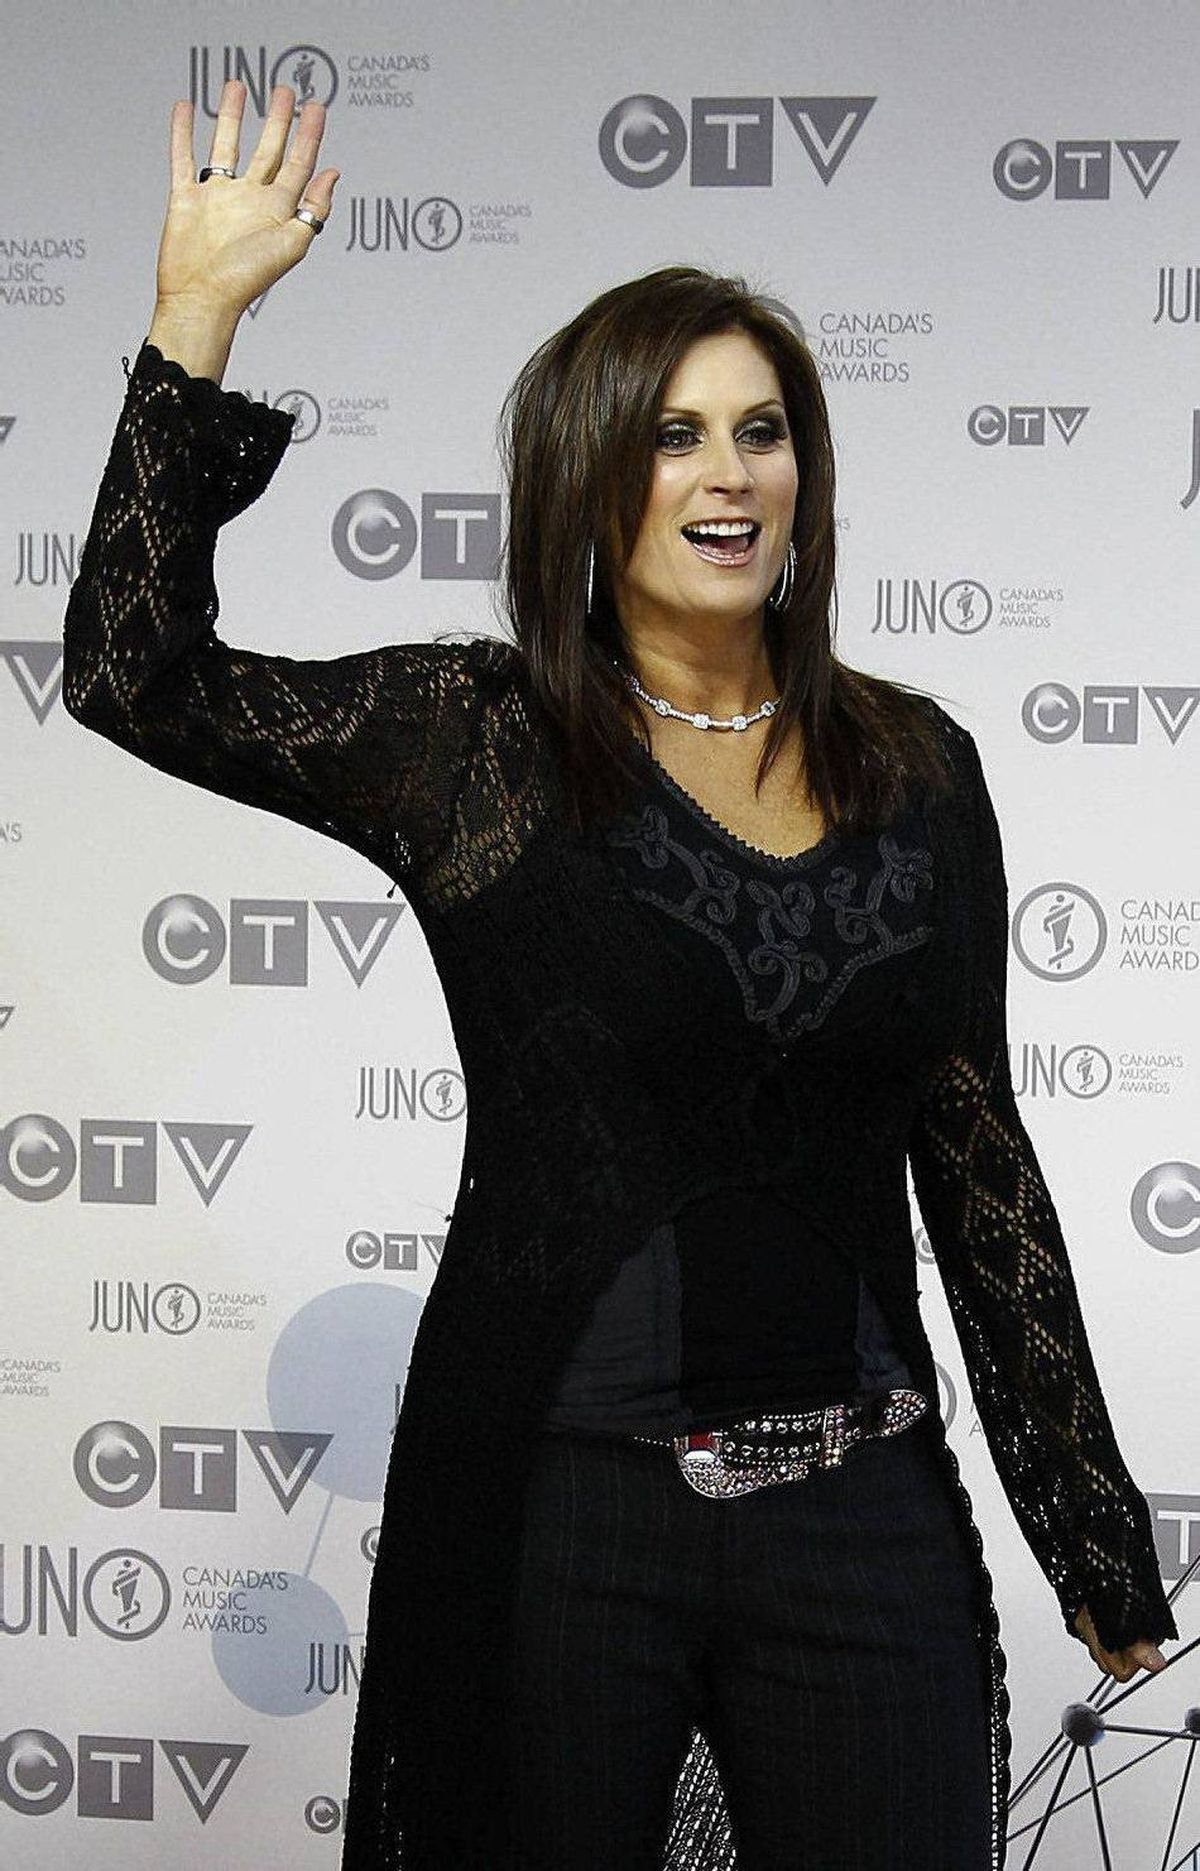 Recording artist Terri Clark arrives on the red carpet during the 41st Juno Awards in Ottawa April 1, 2012.